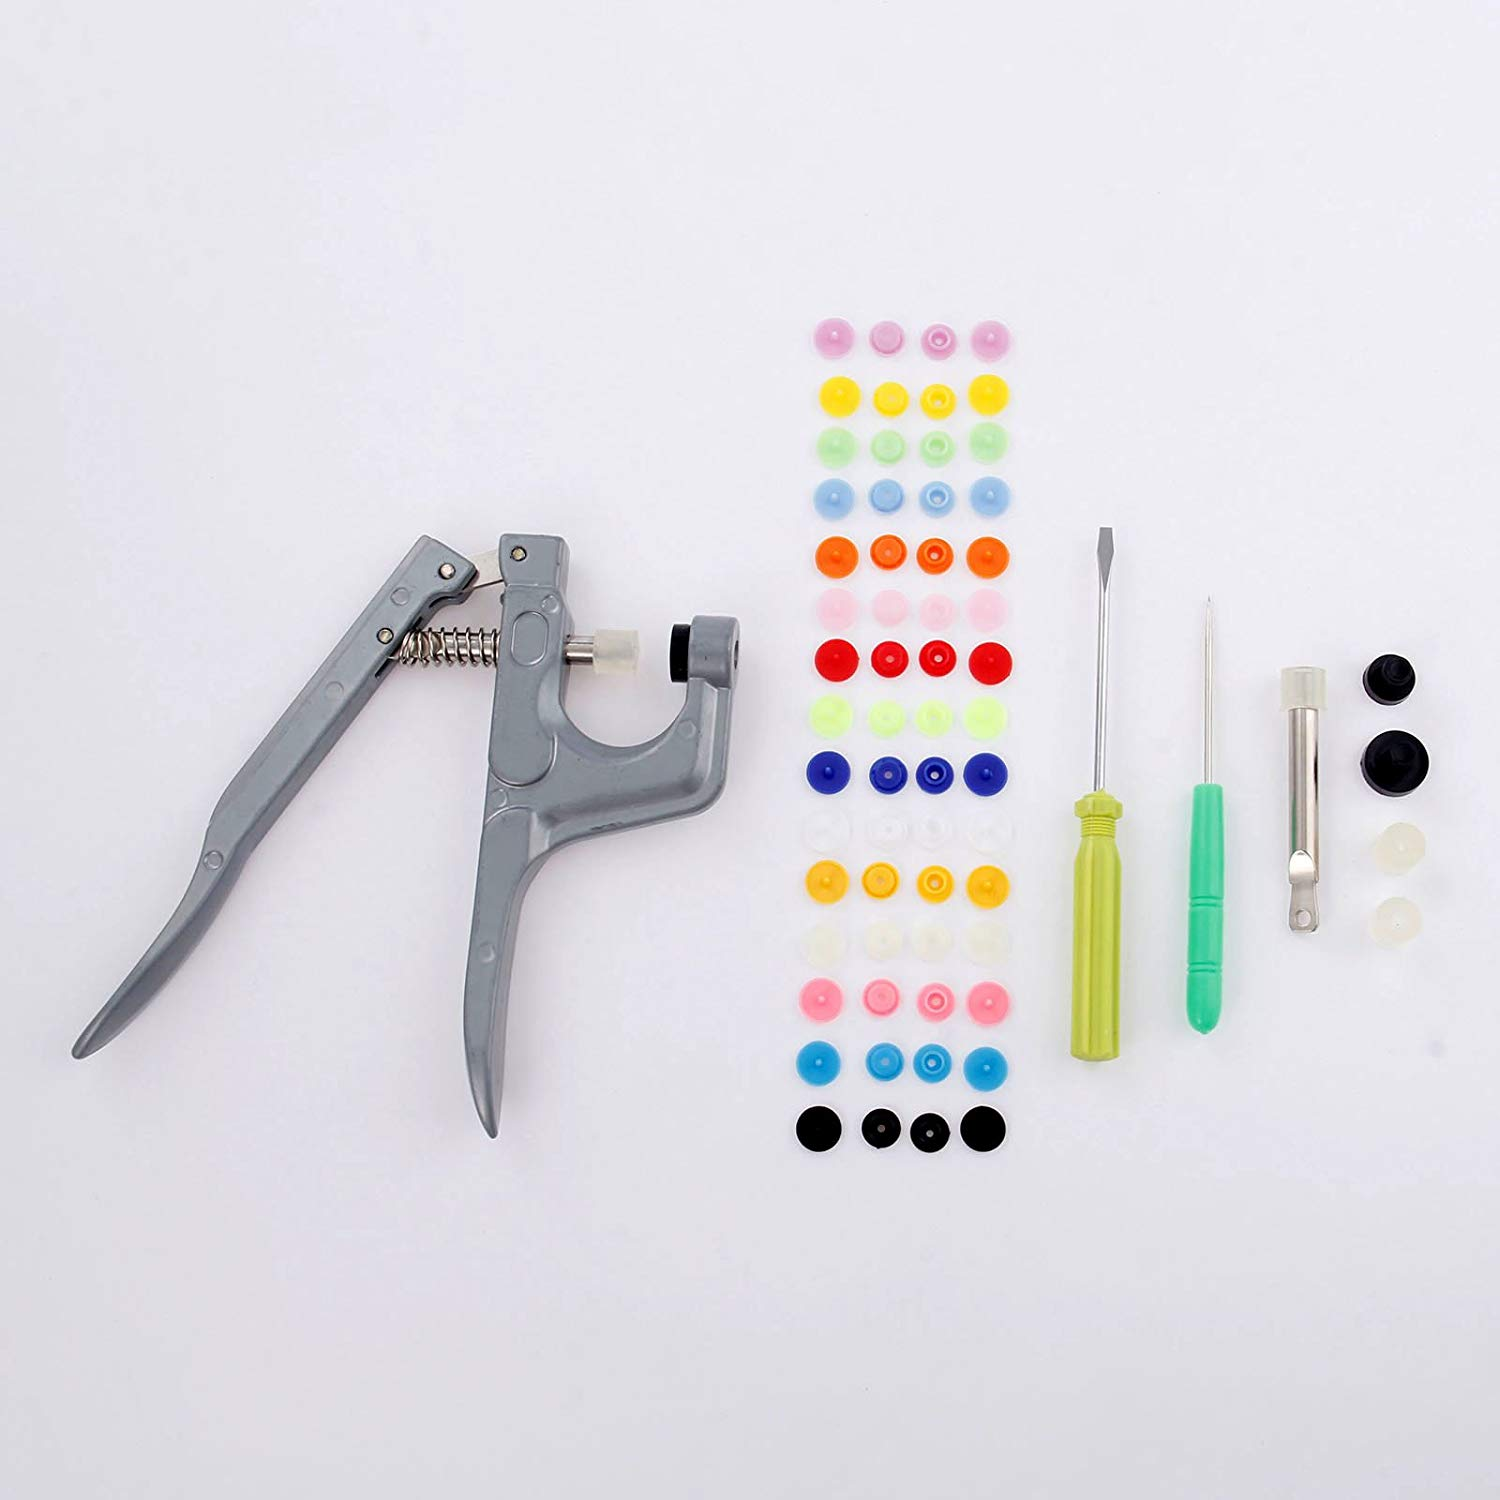 1 Set Snap Plier Tools T3 T5 T8 Deduction Clamp+300pcs-T5 Snap Buttons Sewing Supplies for Fastener Diaper DIY Mixing